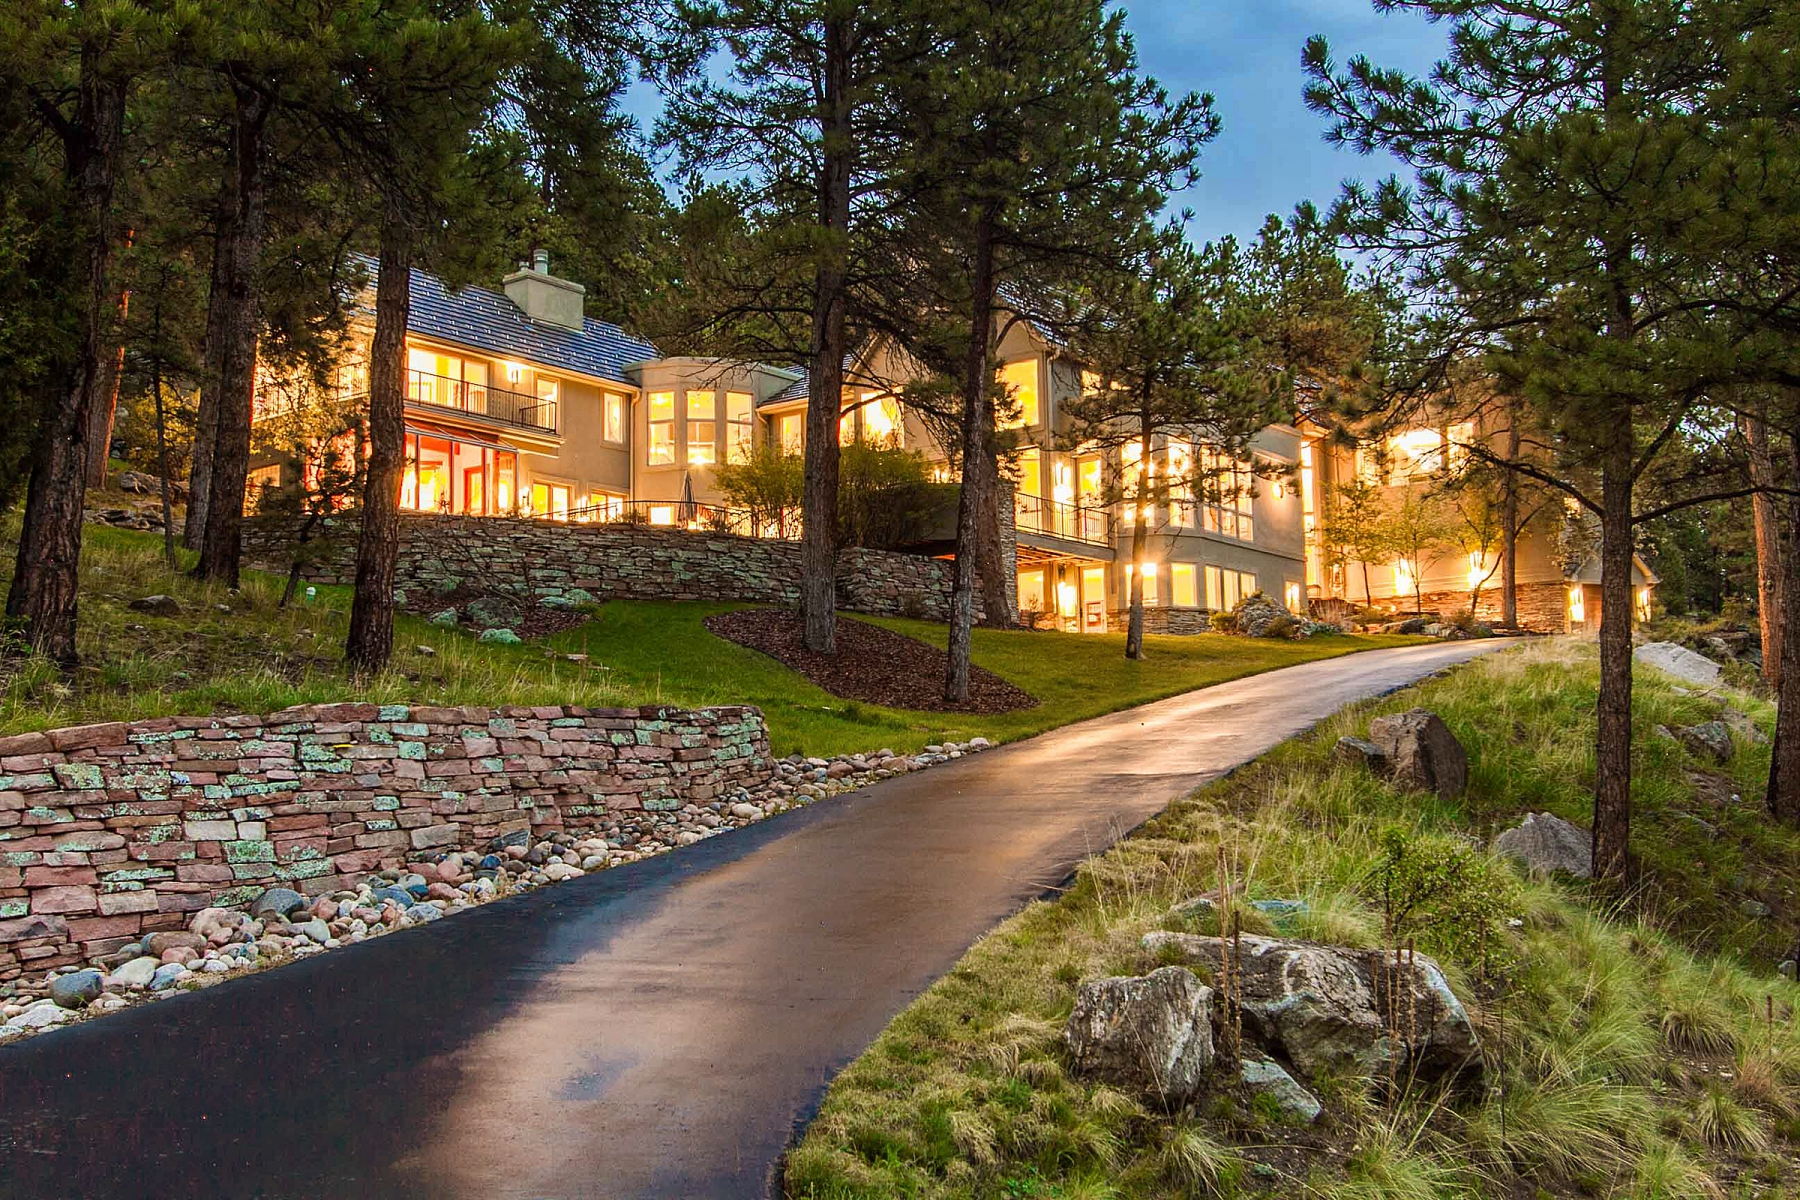 Single Family Home for Sale at Mountain Modern with Views 29627 Gleneden Lane Evergreen, Colorado 80439 United States